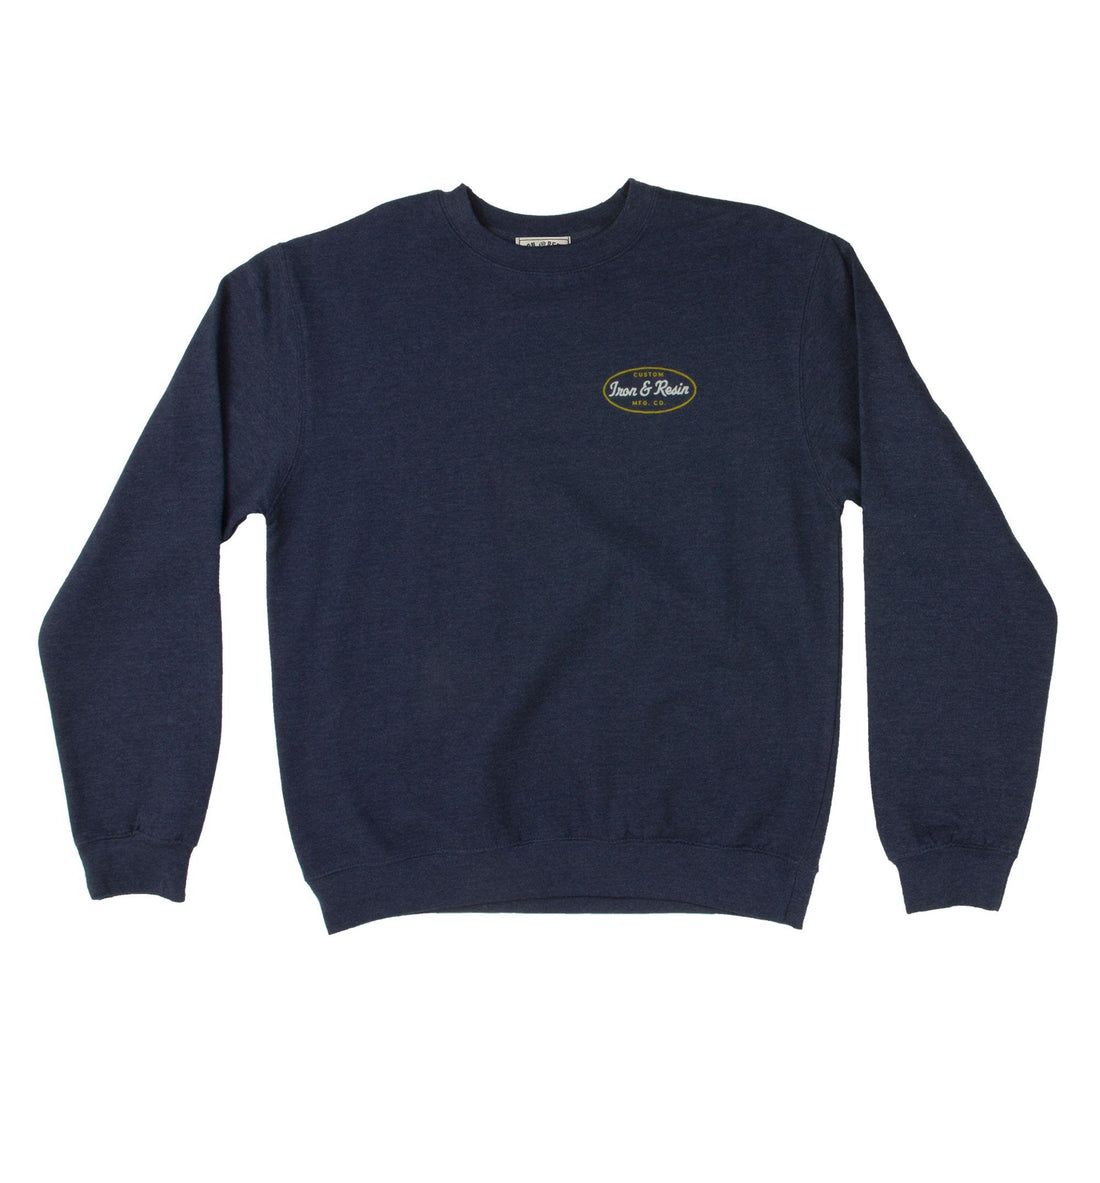 Stanton Crew Fleece - Tops - Iron and Resin